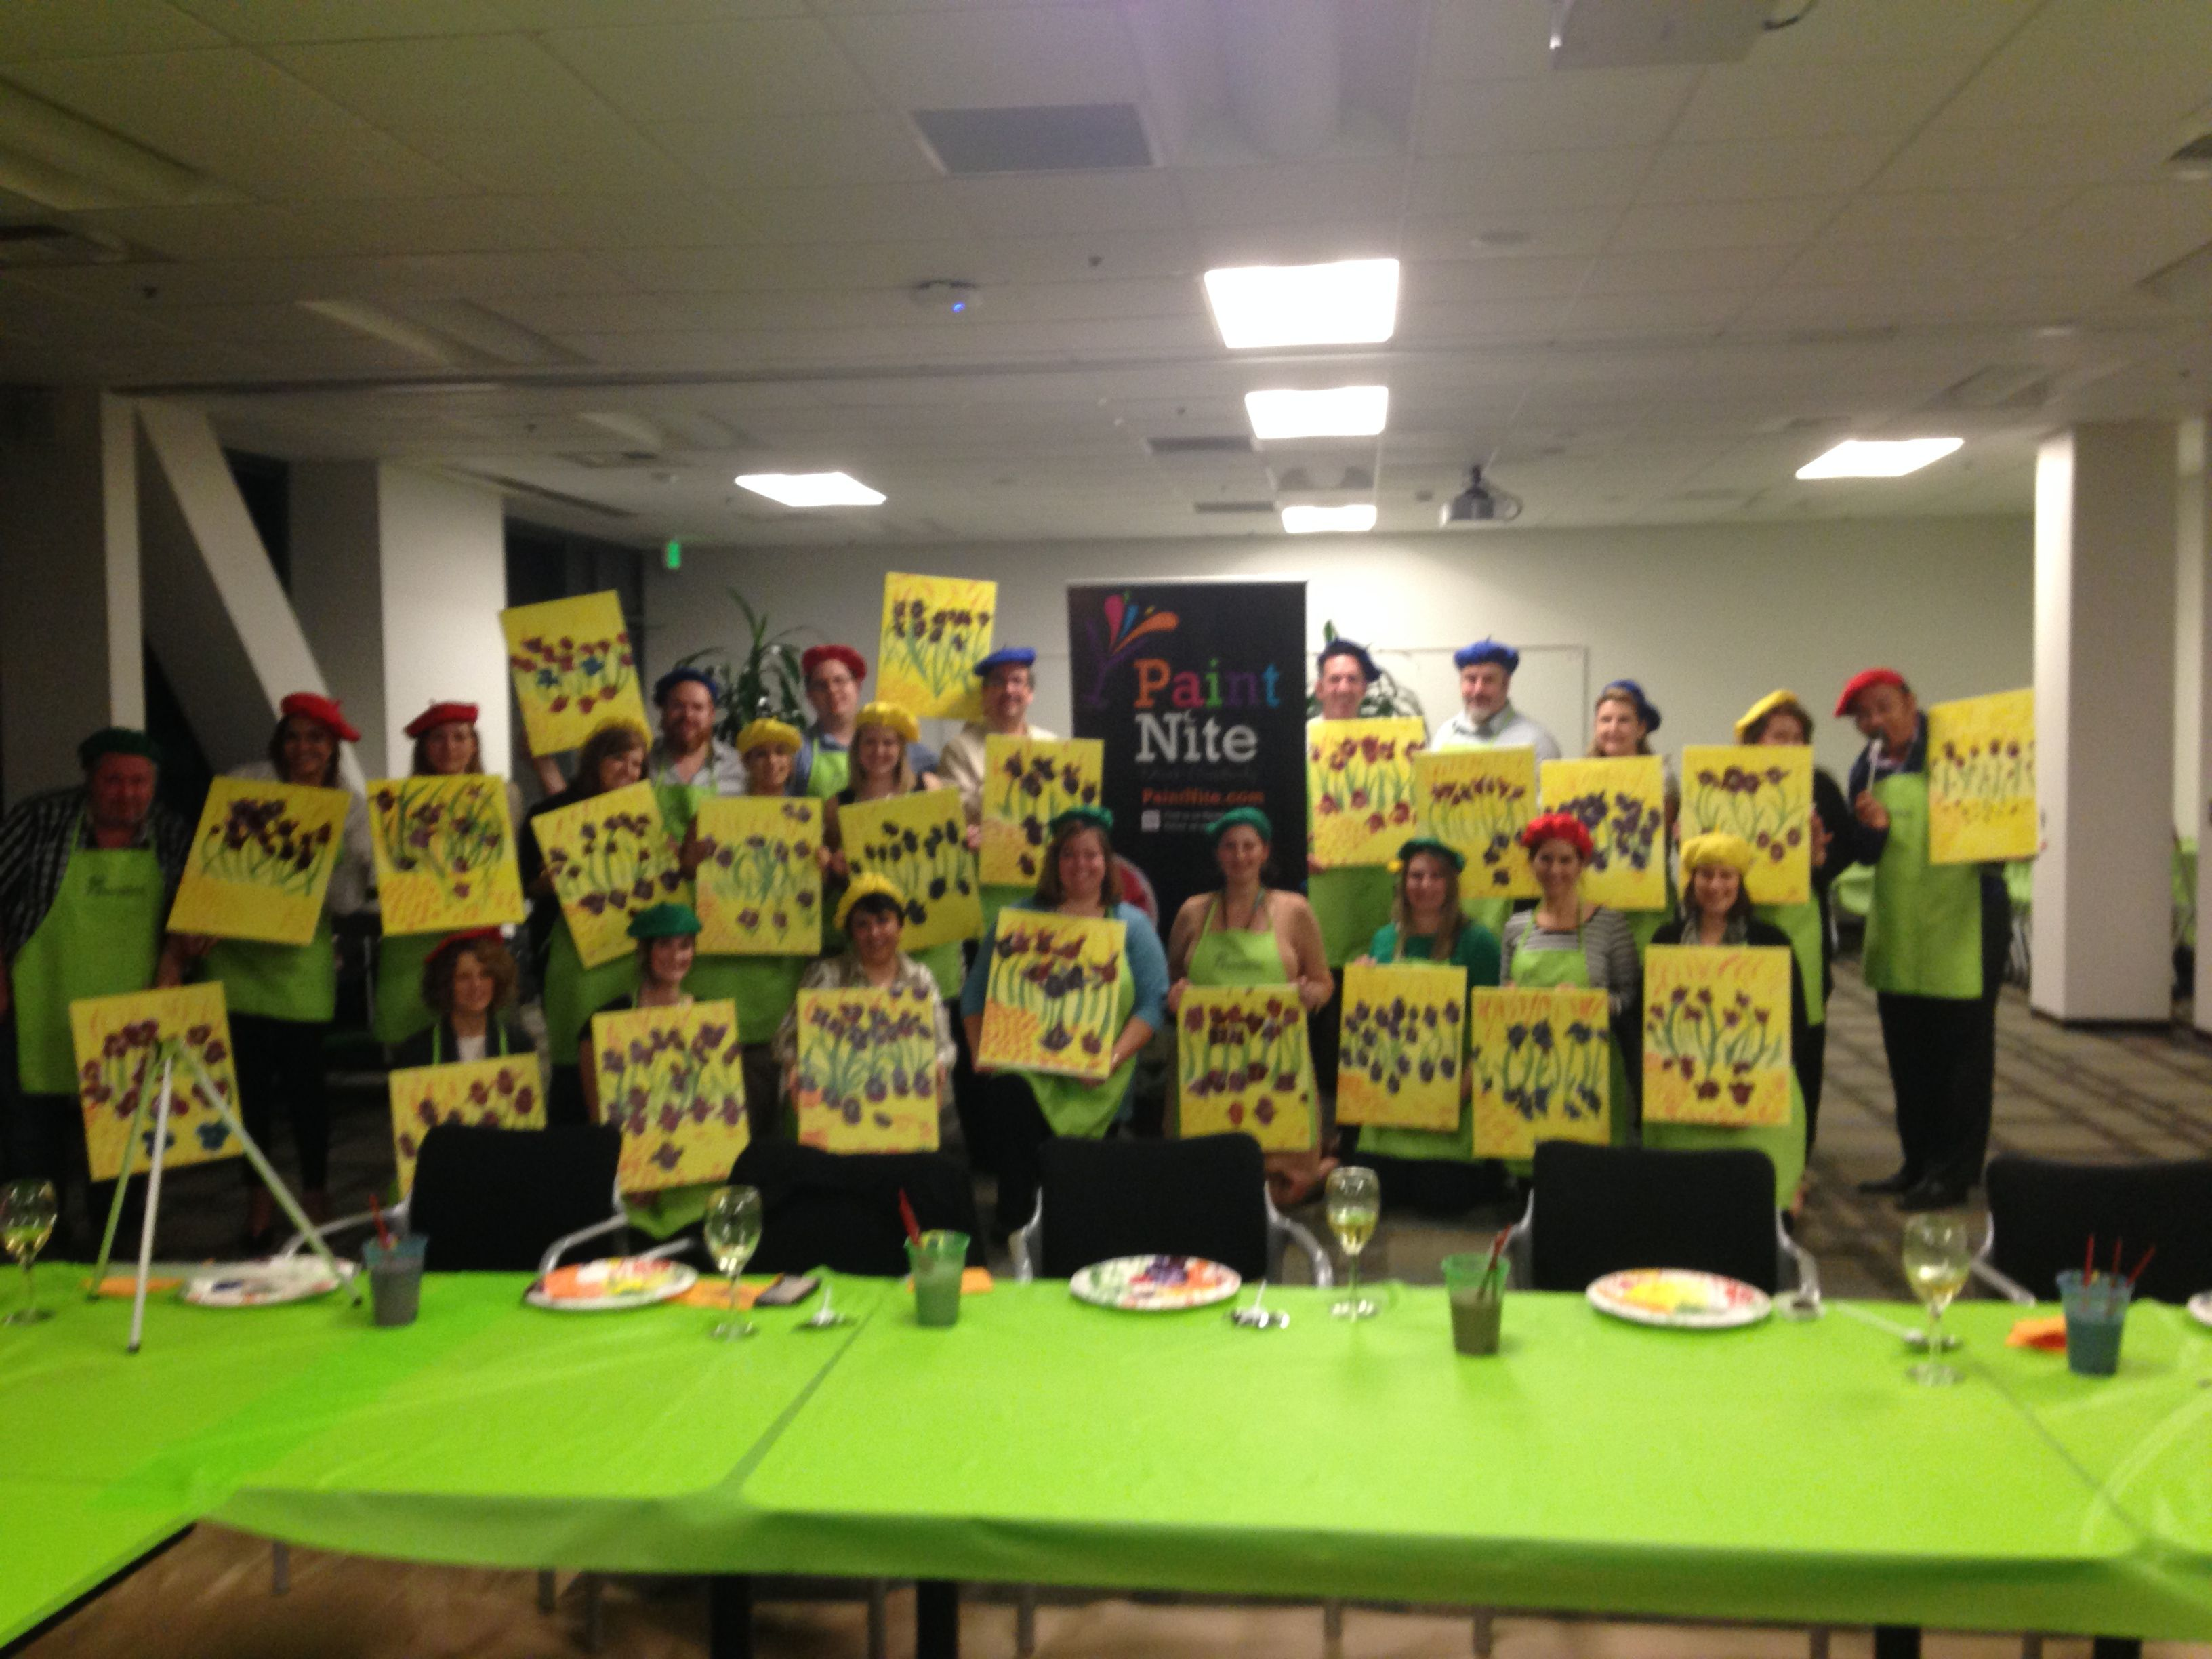 2014 Event Team Summit. Paint Party Night, French Theme